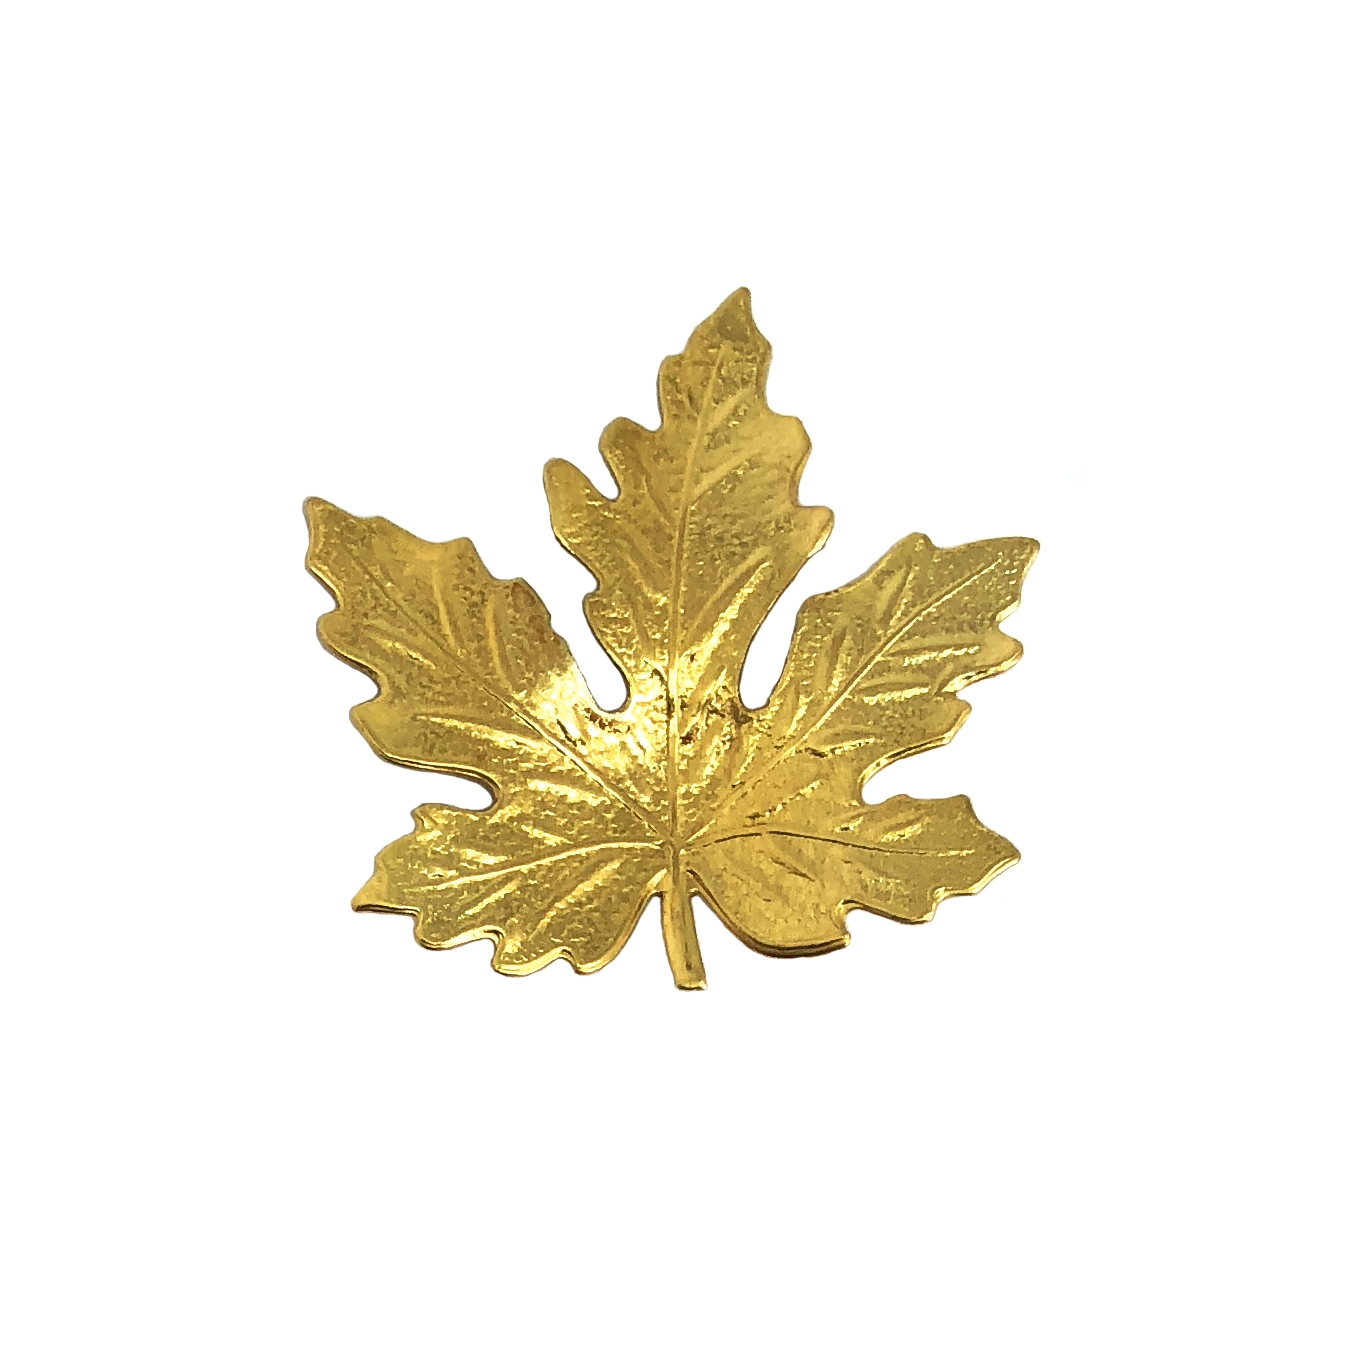 brass leaves, jewelry making, raw brass, 06265, B'sue Boutiques, nickel free jewelry supplies, US made jewelry supplies, vintage jewellery supplies, altered art jewelry, maple leaves, antique brass, 41mm